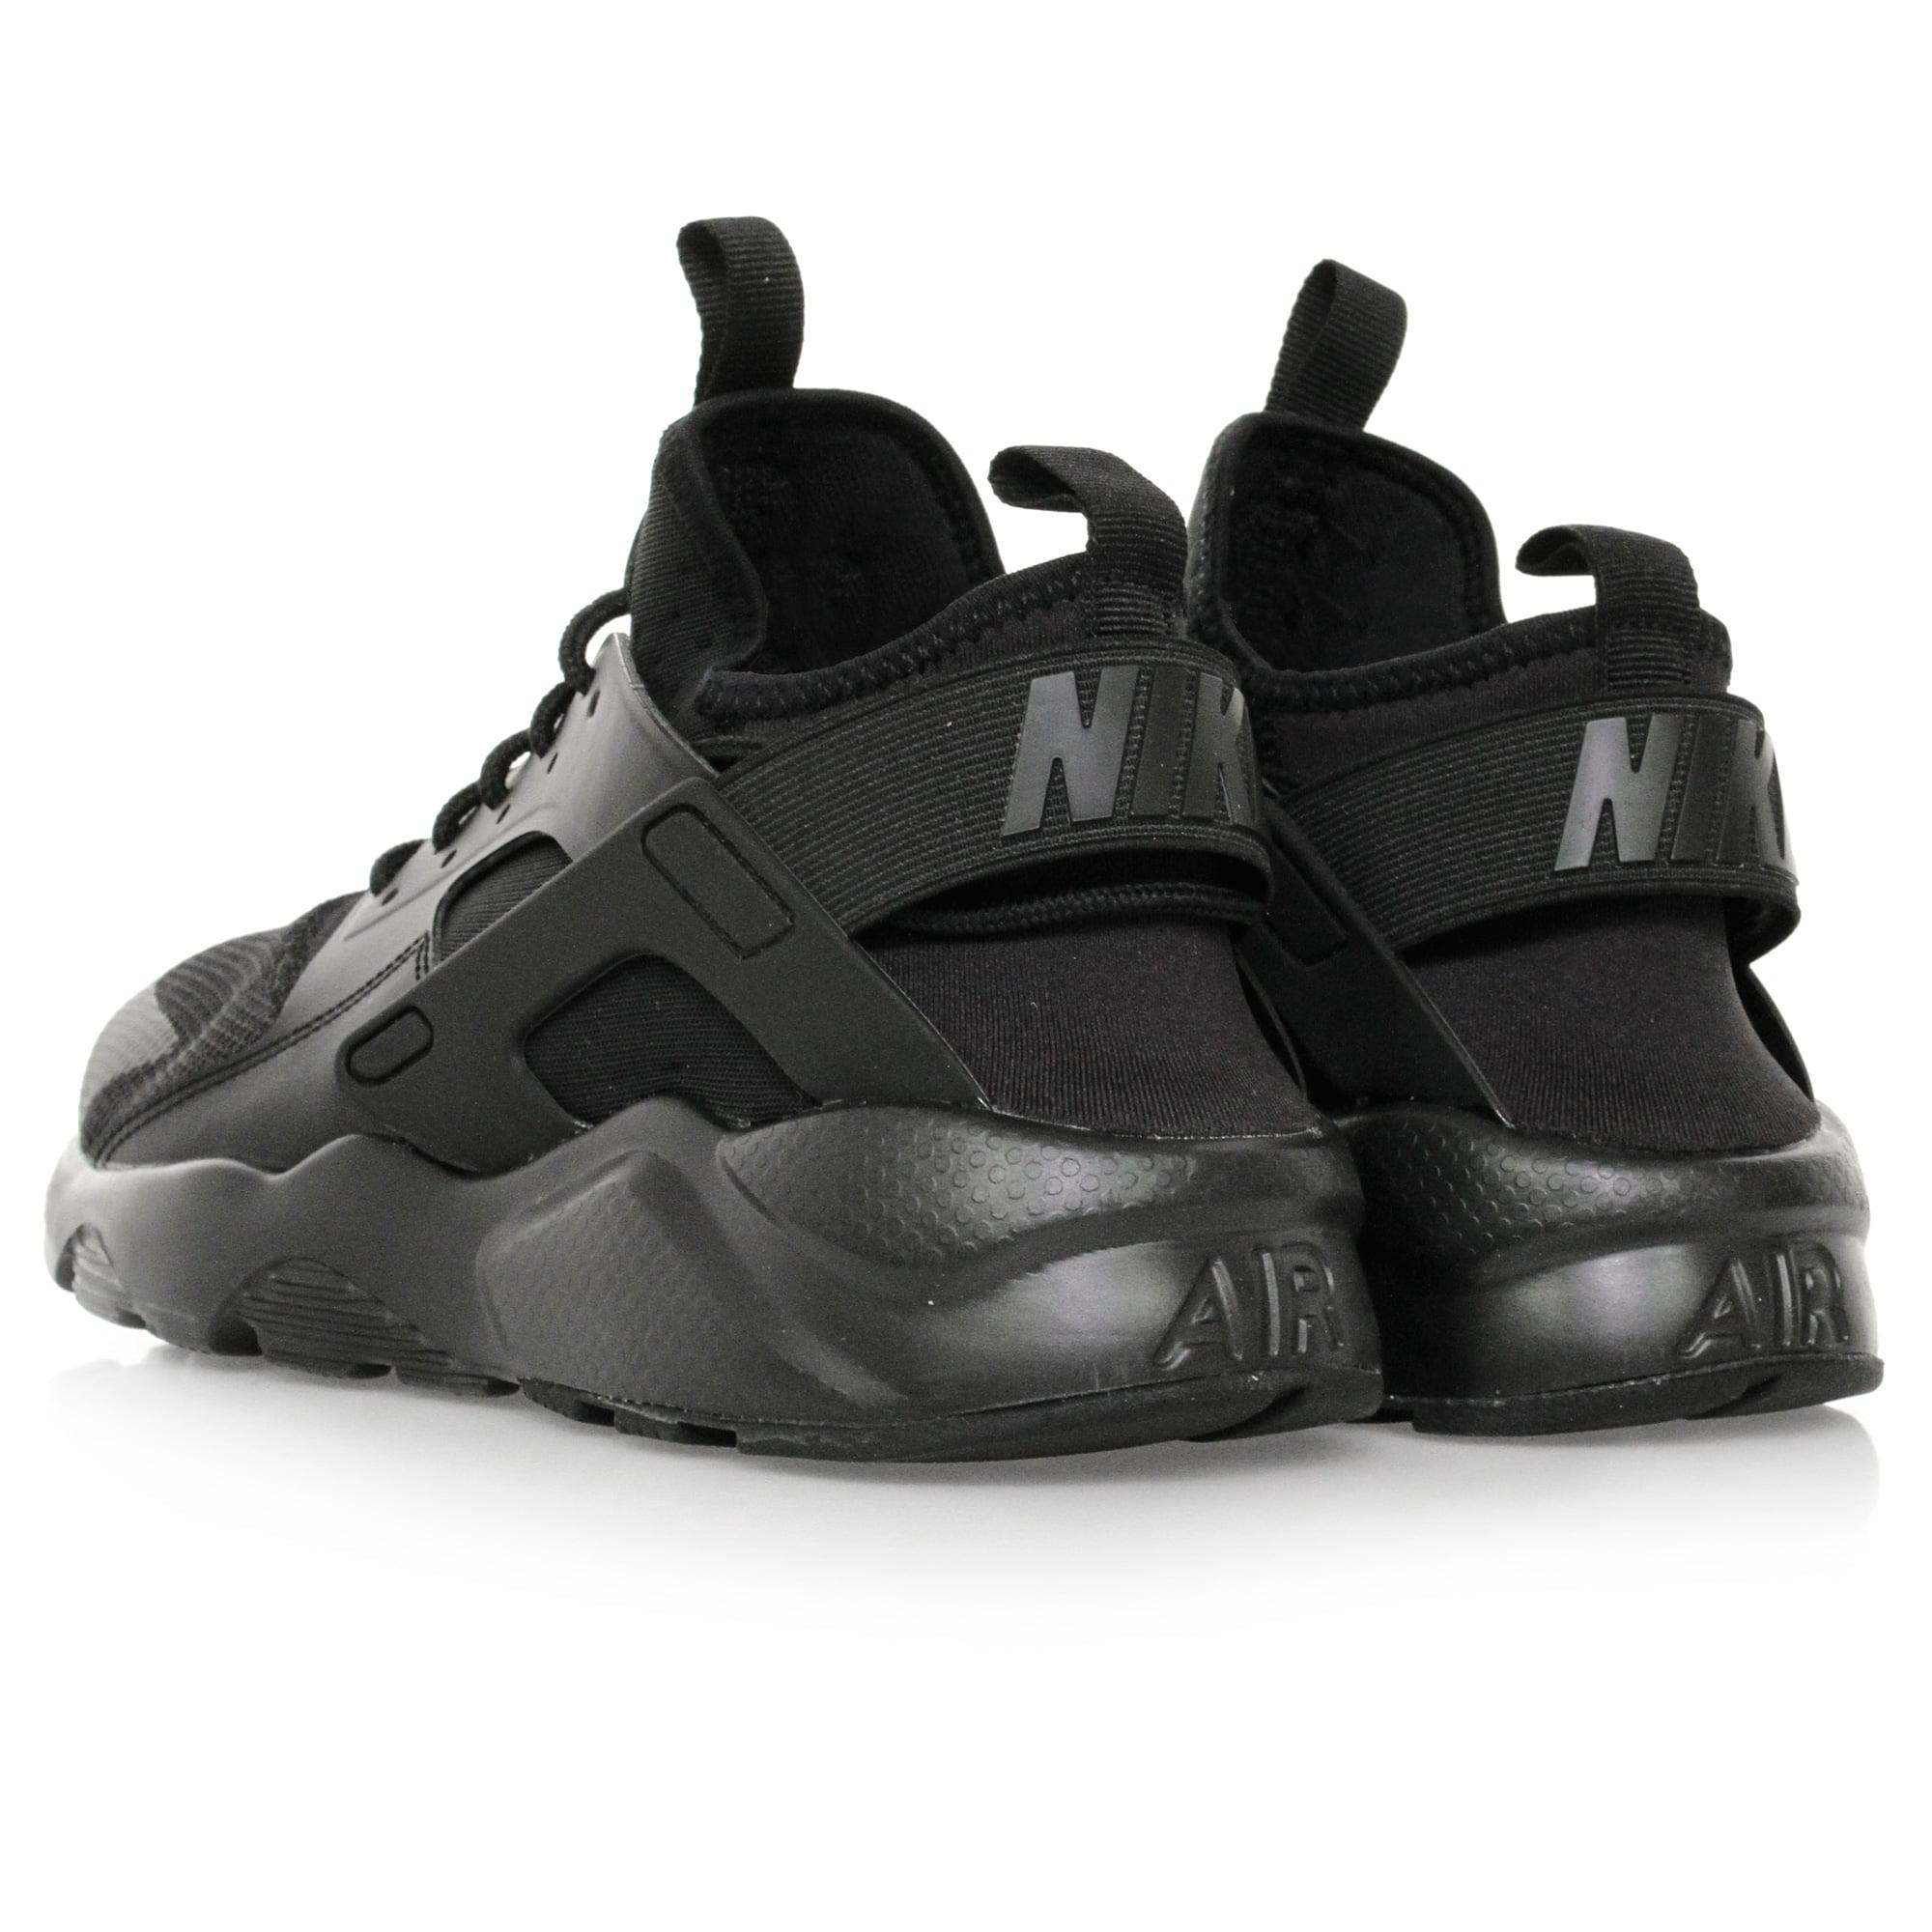 82350fb249 Nike Air Huarache Run Ultra Black Shoe 819685 002 in Black for Men ...